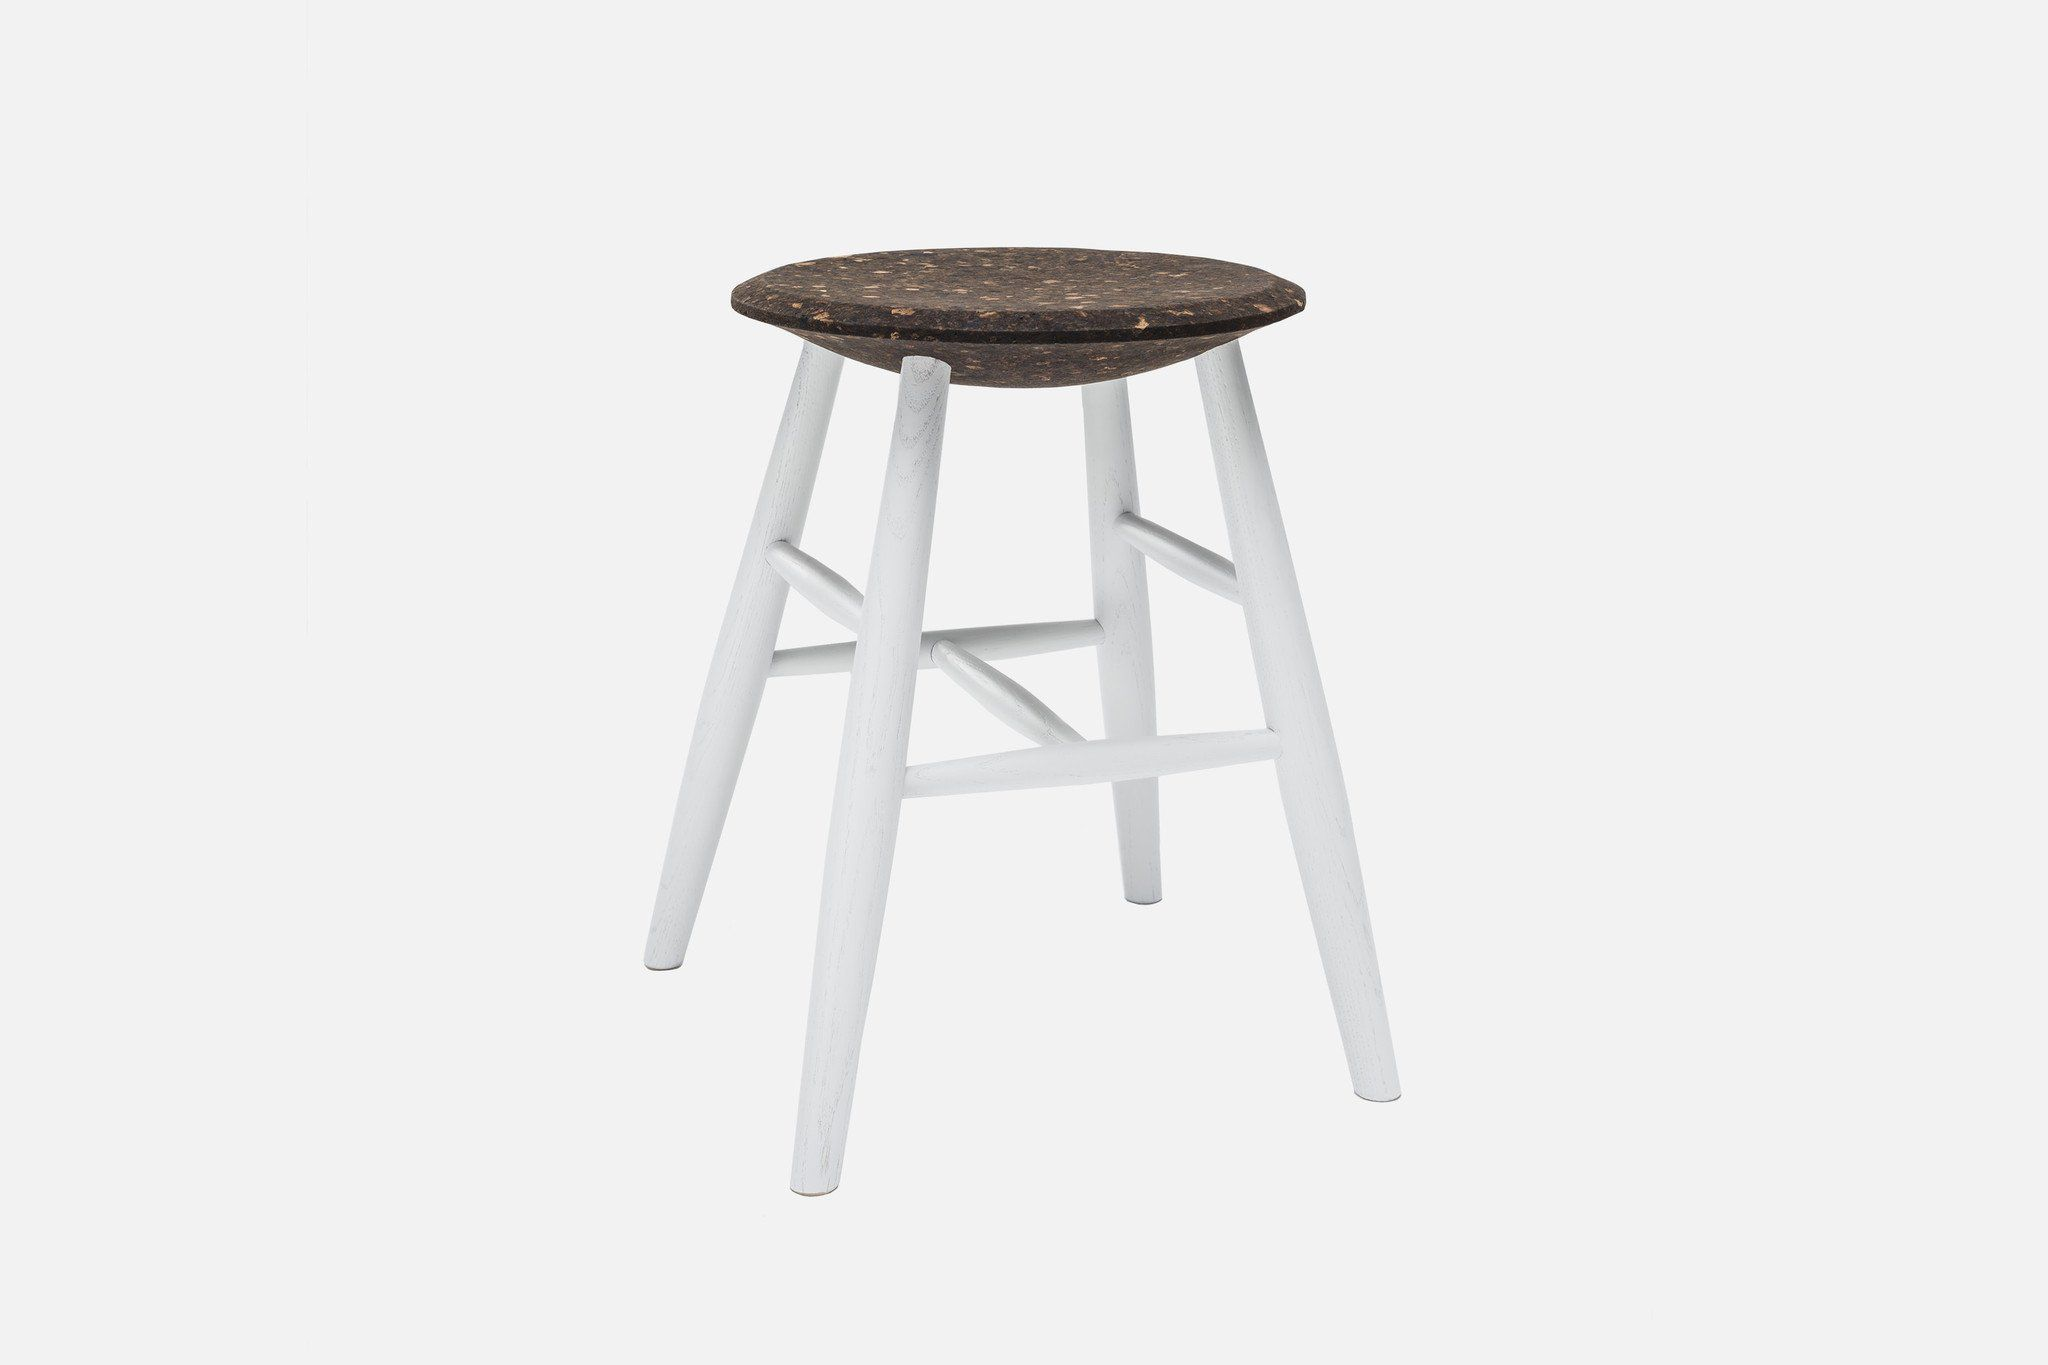 Sgabello design scandinavo in quercia in sughero drifted stool